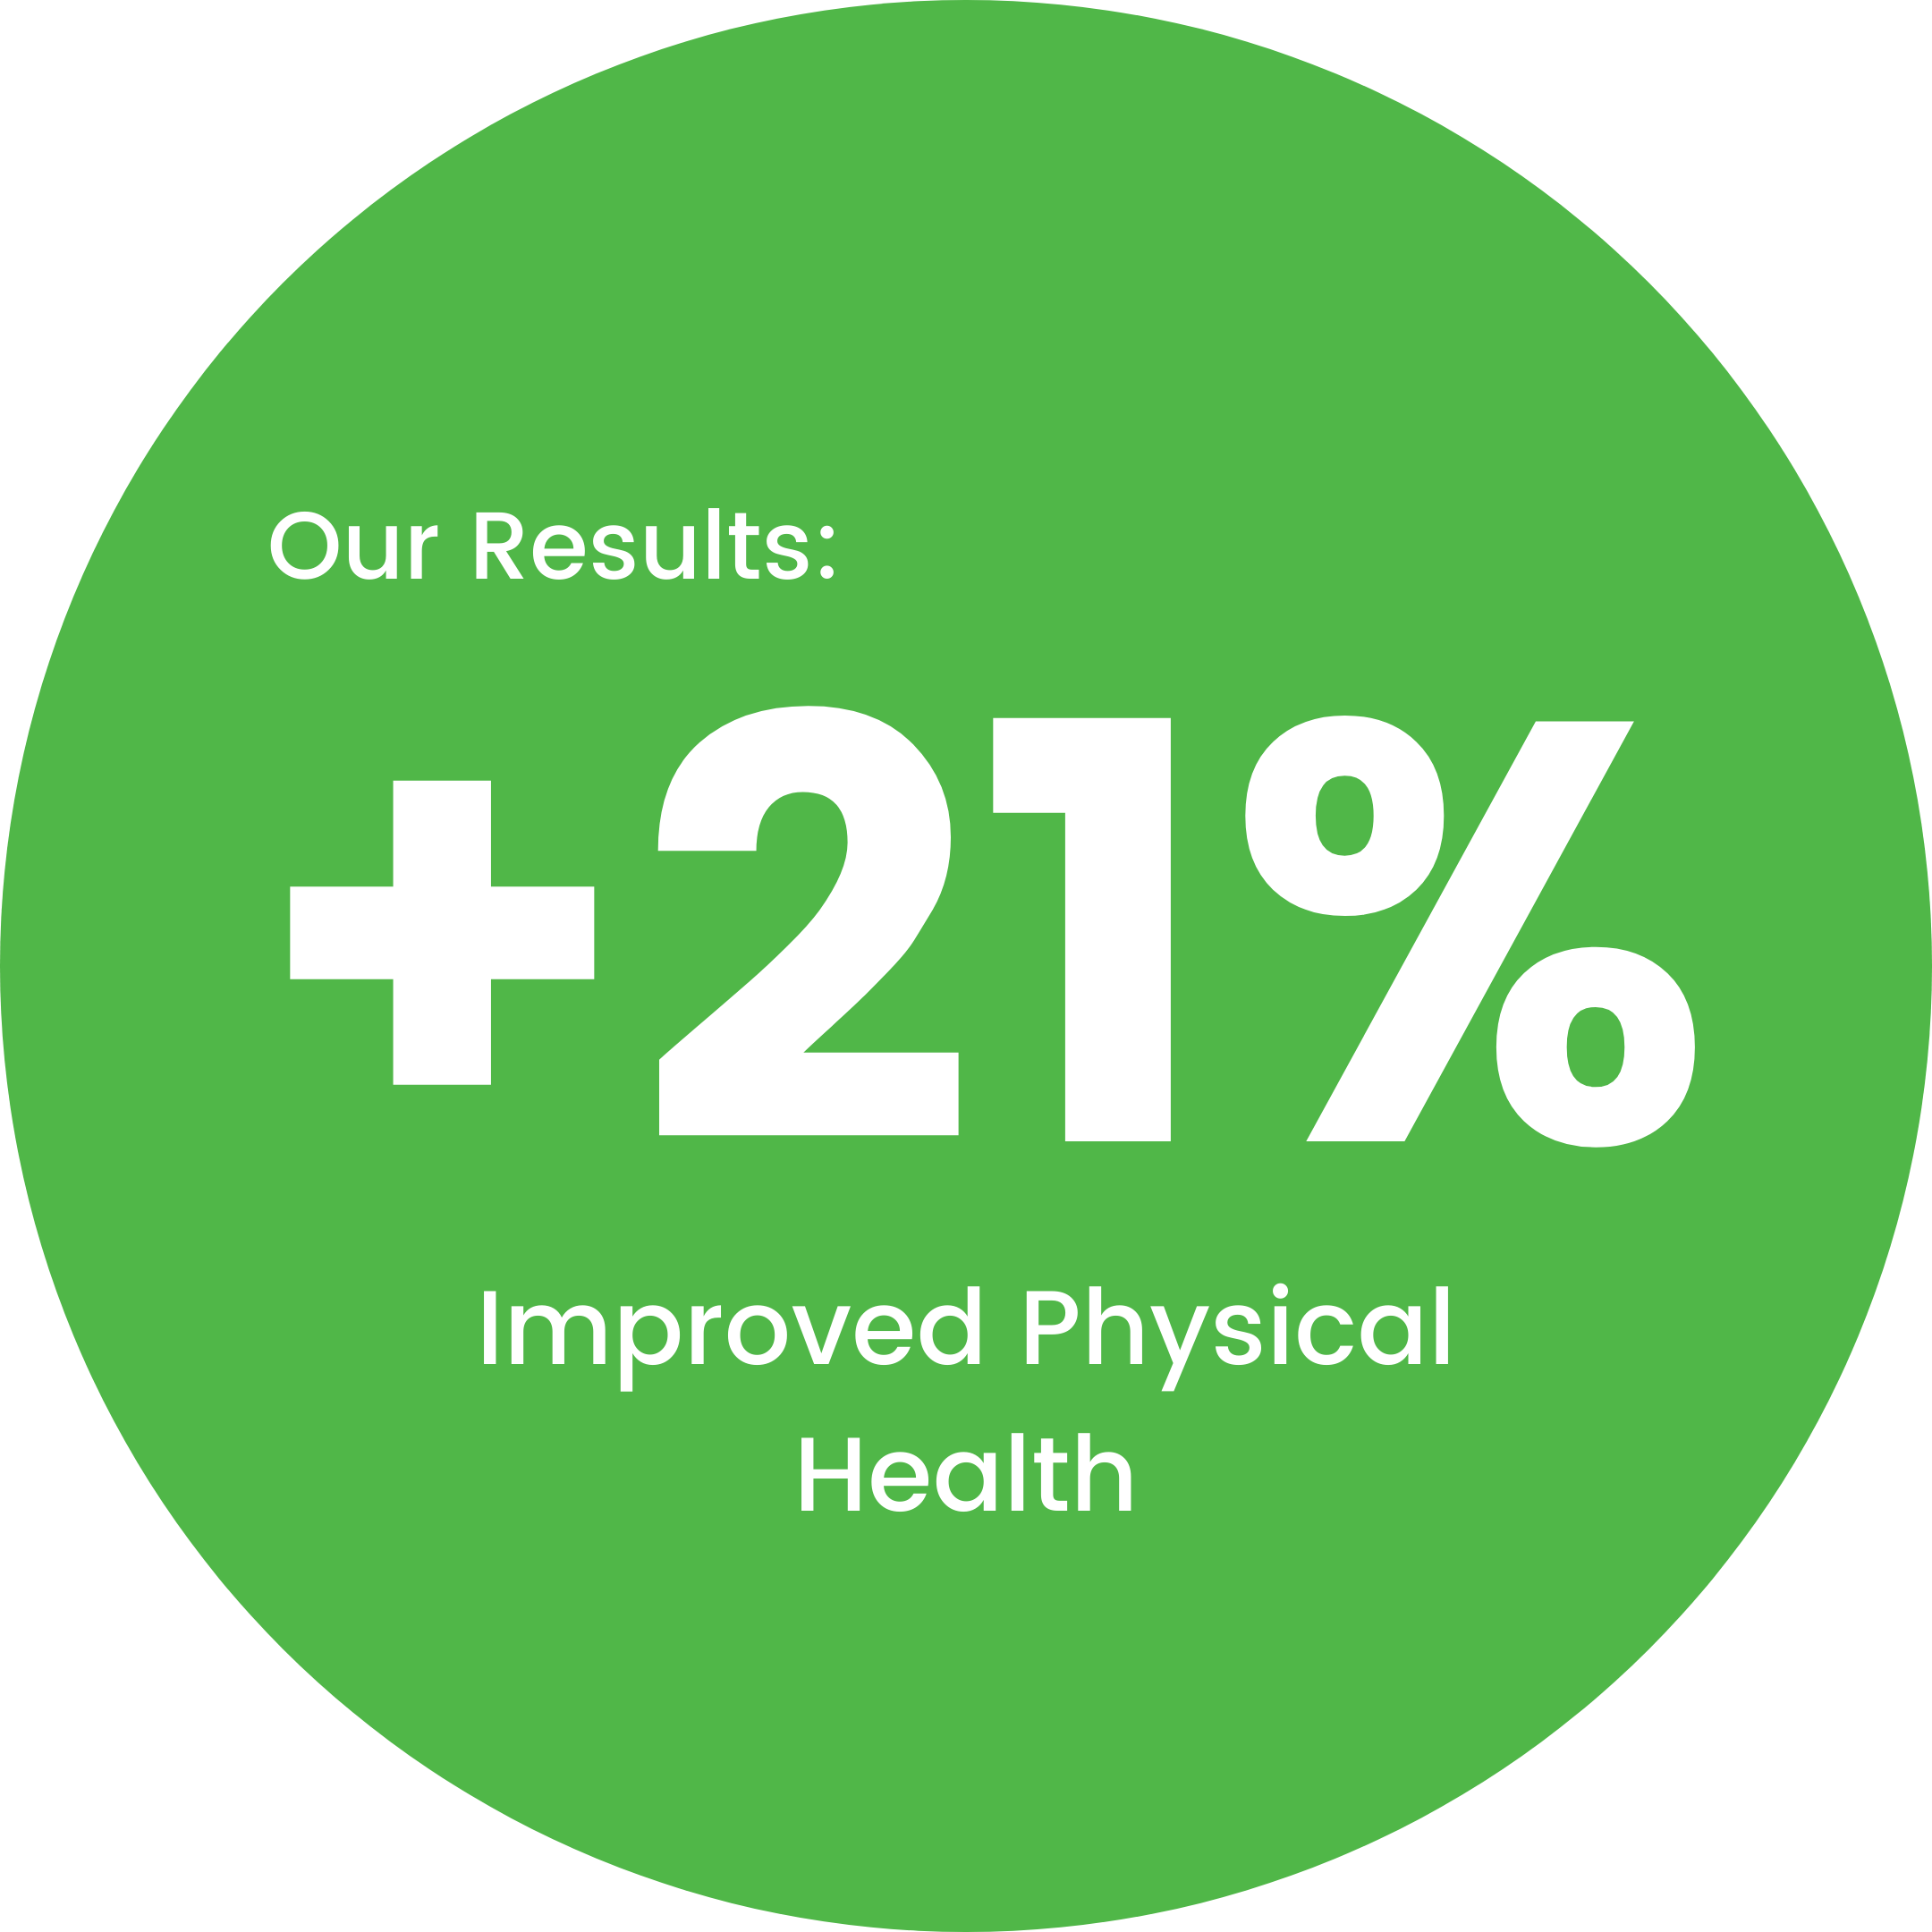 LeggUP coaching improves physical health of members up to 21%